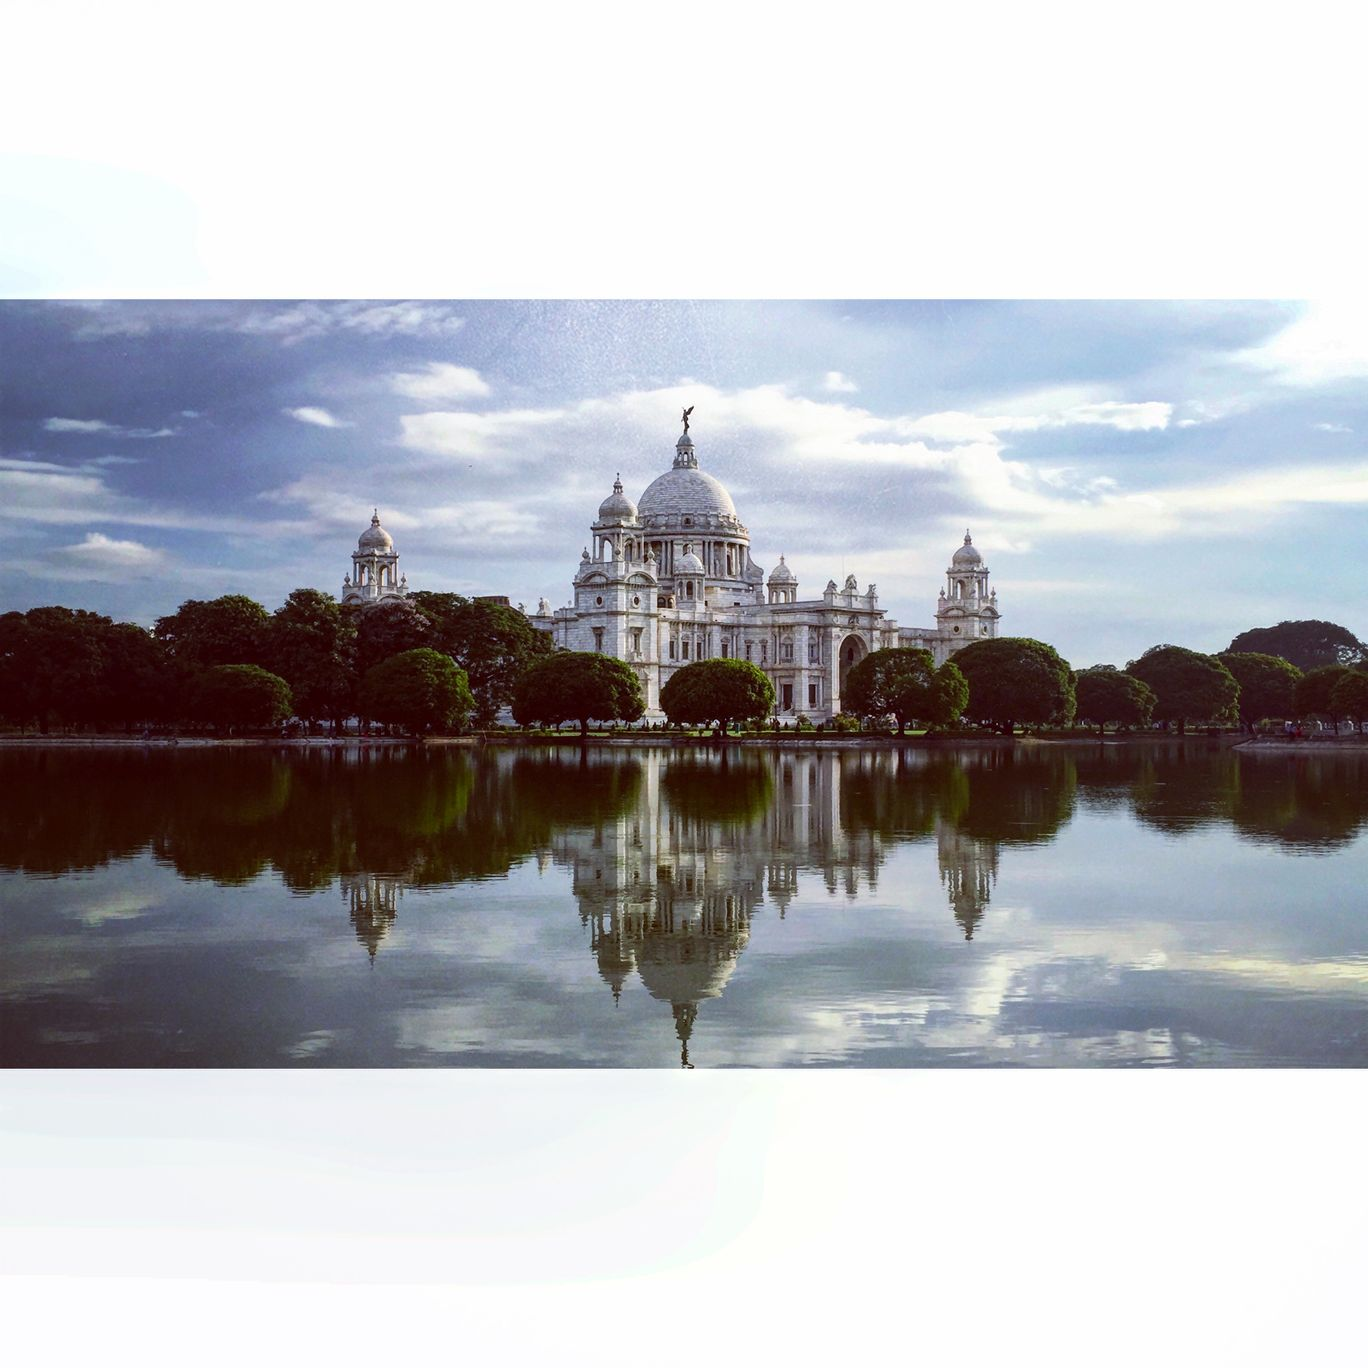 Photo of Victoria Memorial By Ankit Yaduvanshi